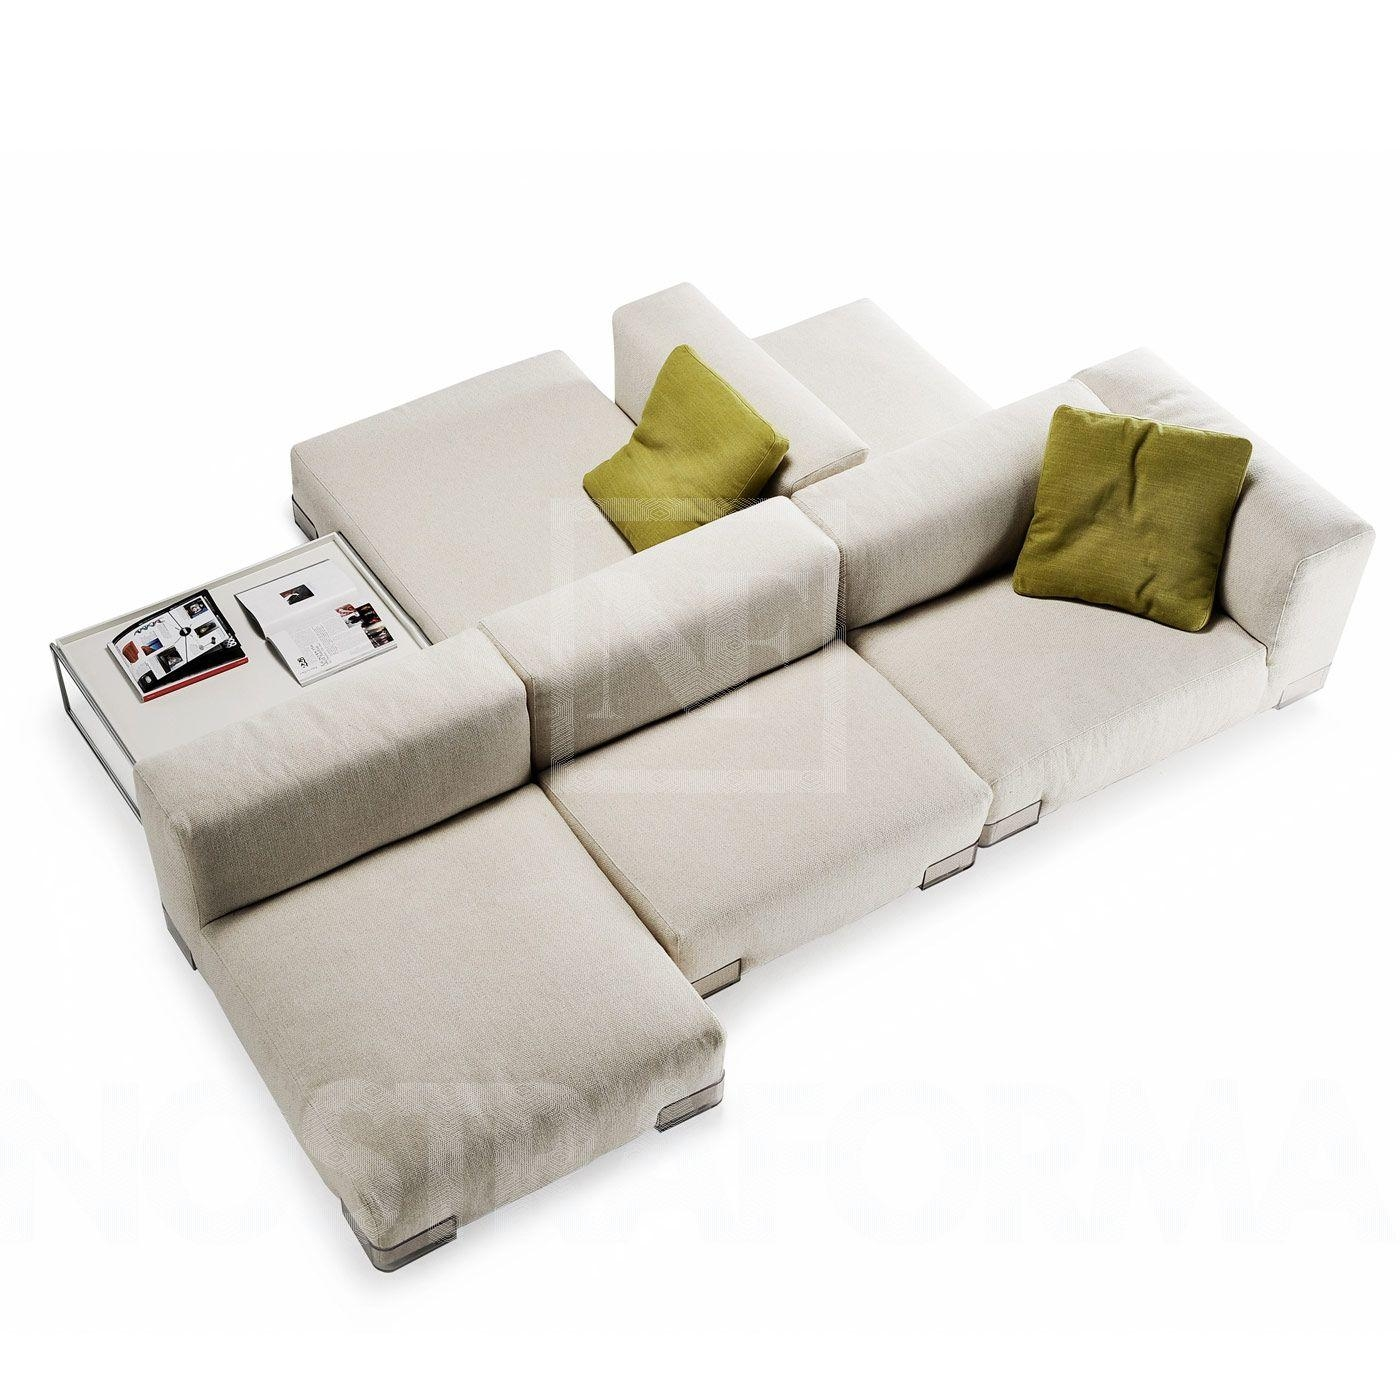 Furniture: Double Sided Sofa | Build A Sectional Sofa | Latest Couches Intended For Sleek Sectional Sofa (Image 7 of 20)